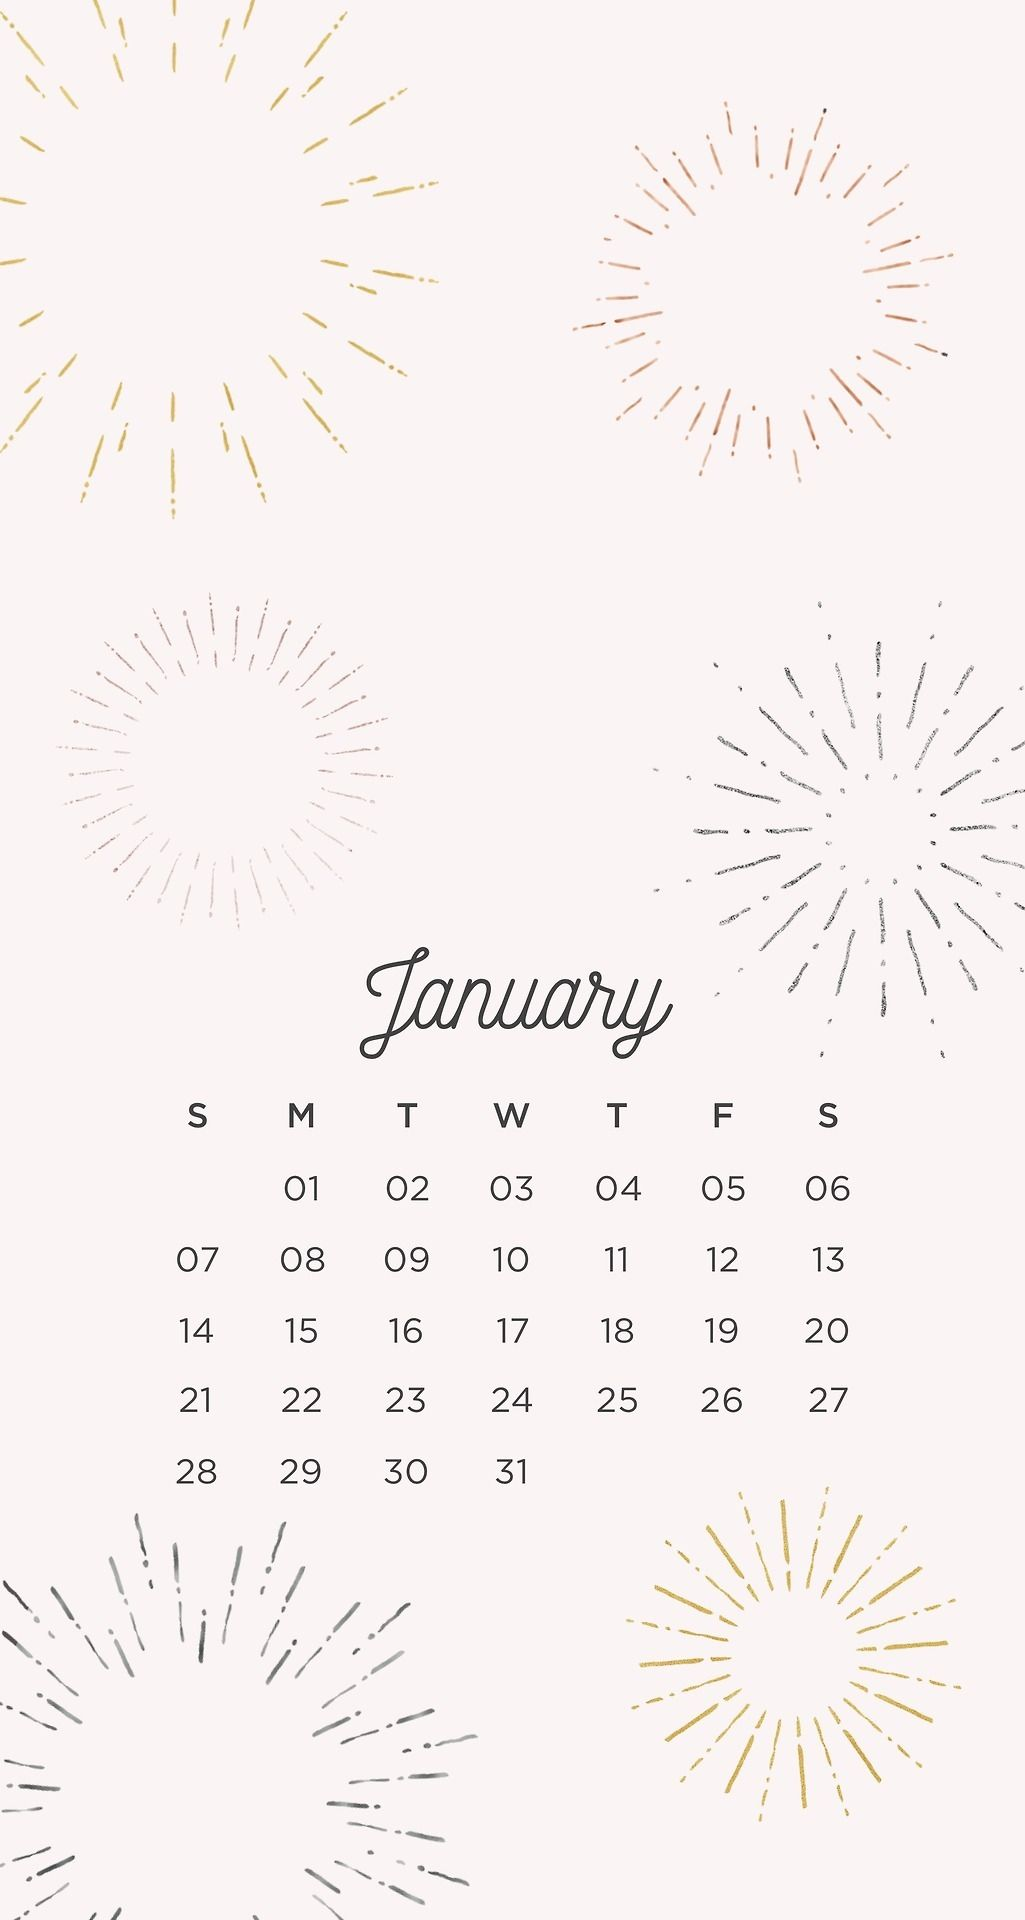 2018 new year January wallpapers  wallpaperss in 2019  January